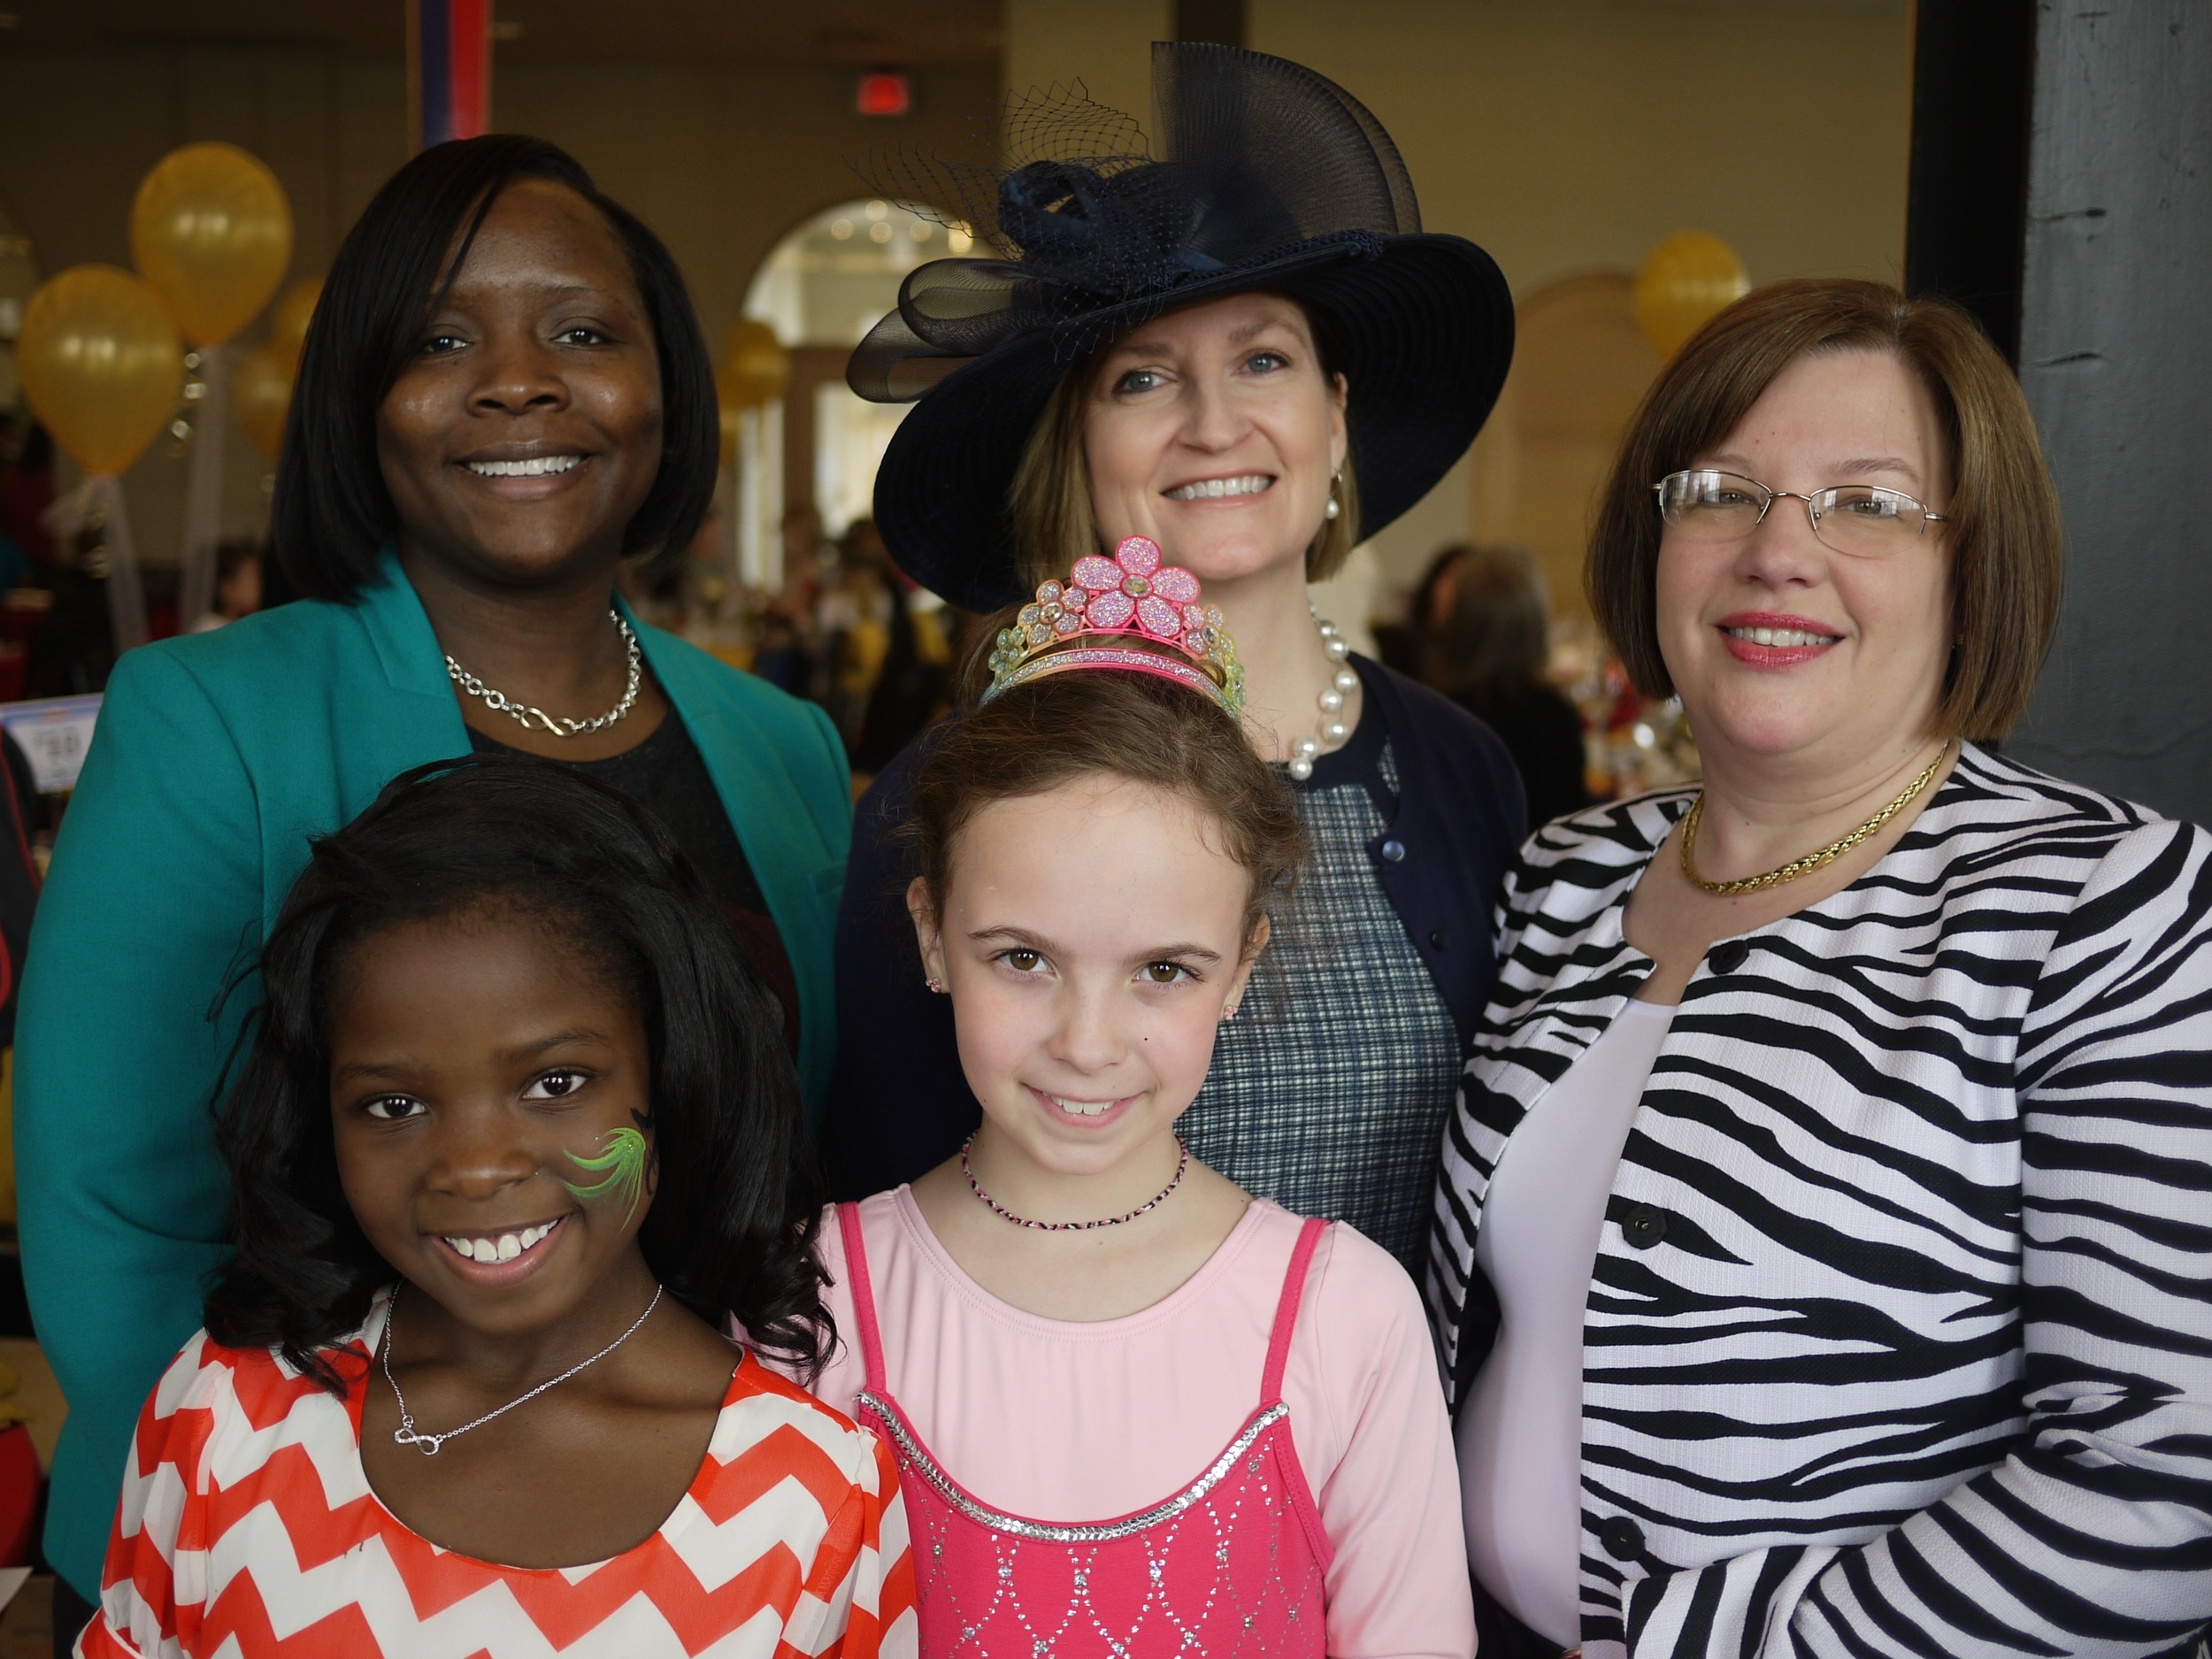 FPF President and Executive Director Lesley Hoffarth (center), with 2014 Wonderland Tea Party Co-Chairs Shonté Moore and Makenzie Roberts ((left)andGen Frank and Gabby Schmiedeke.